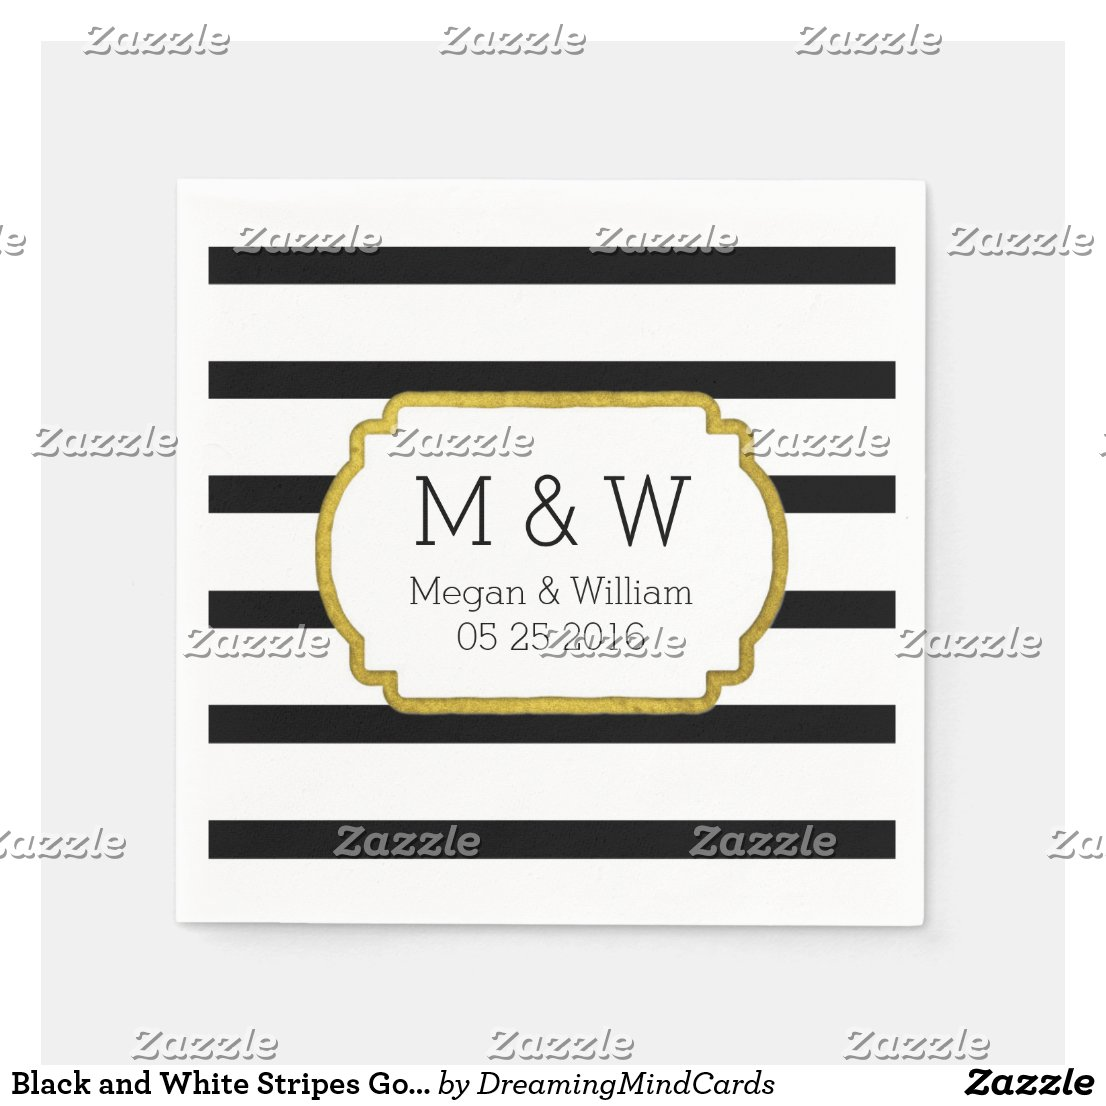 Black and White Stripes Gold Wedding Napkins